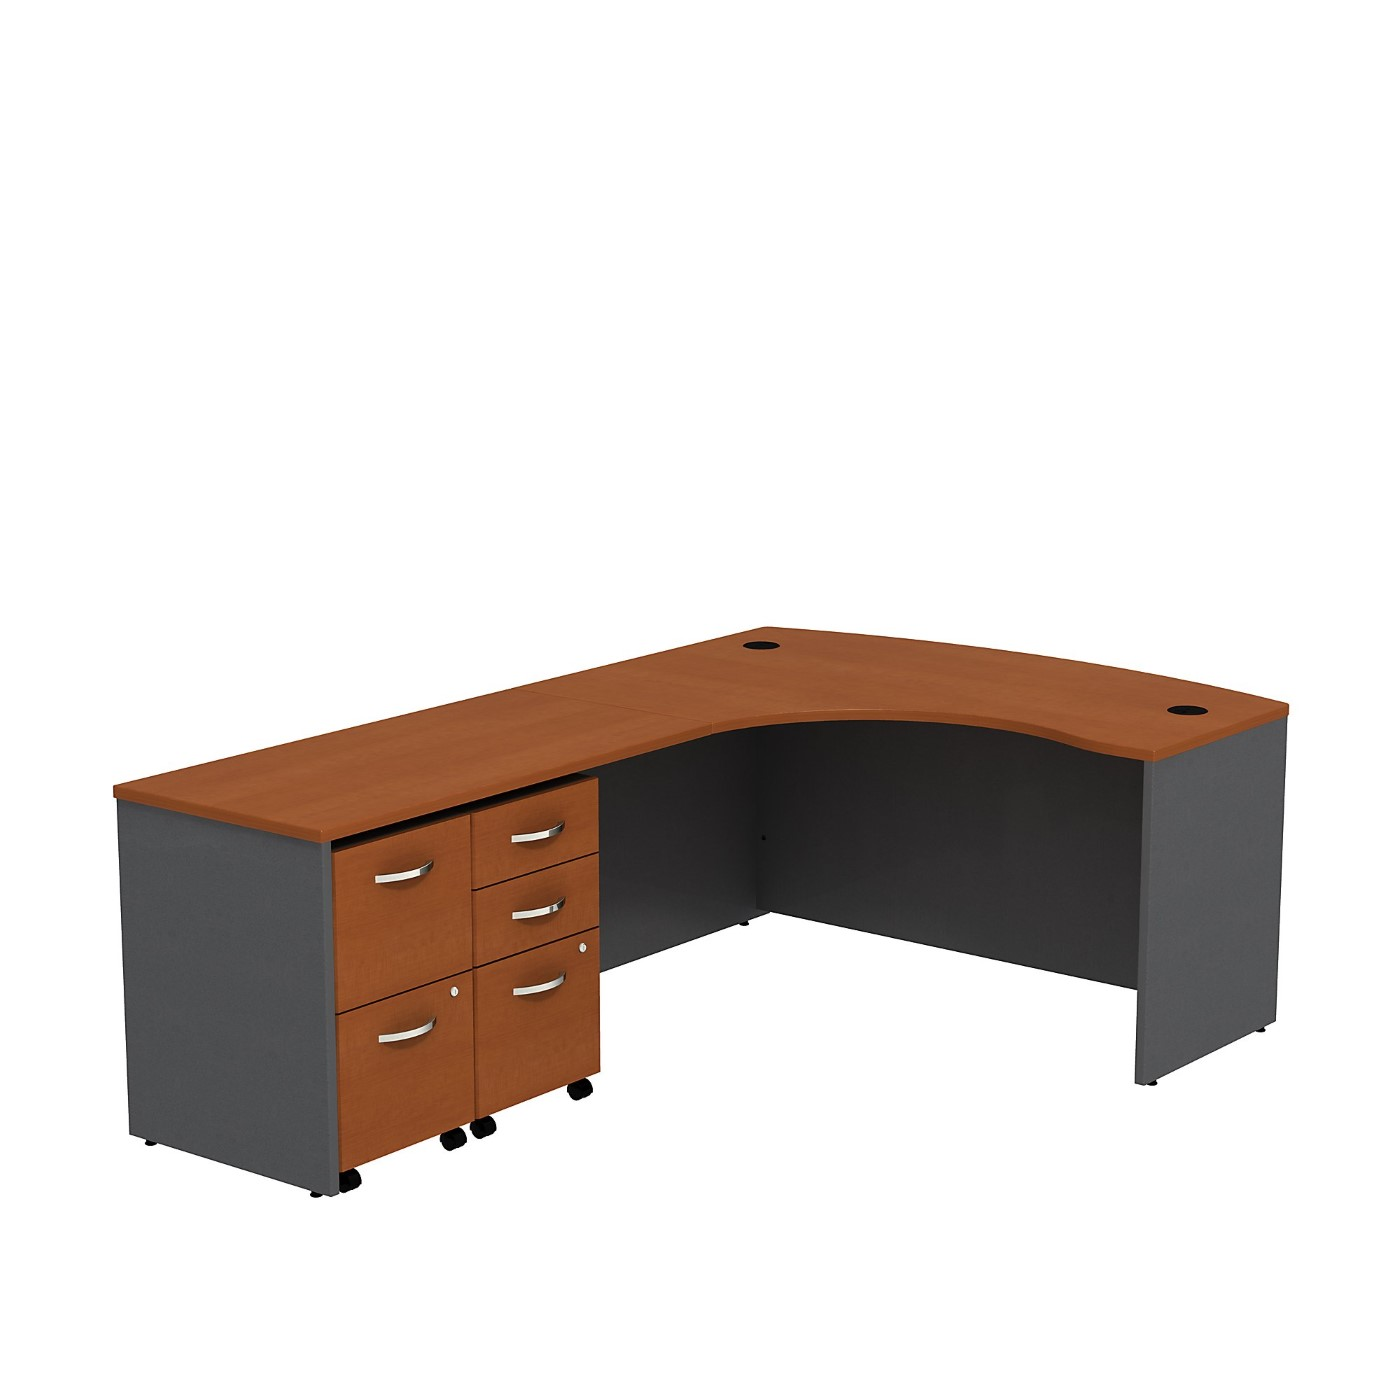 BUSH BUSINESS FURNITURE SERIES C BOW FRONT LEFT HANDED L SHAPED DESK WITH 2 MOBILE PEDESTALS. FREE SHIPPING SALE DEDUCT 10% MORE ENTER '10percent' IN COUPON CODE BOX WHILE CHECKING OUT.